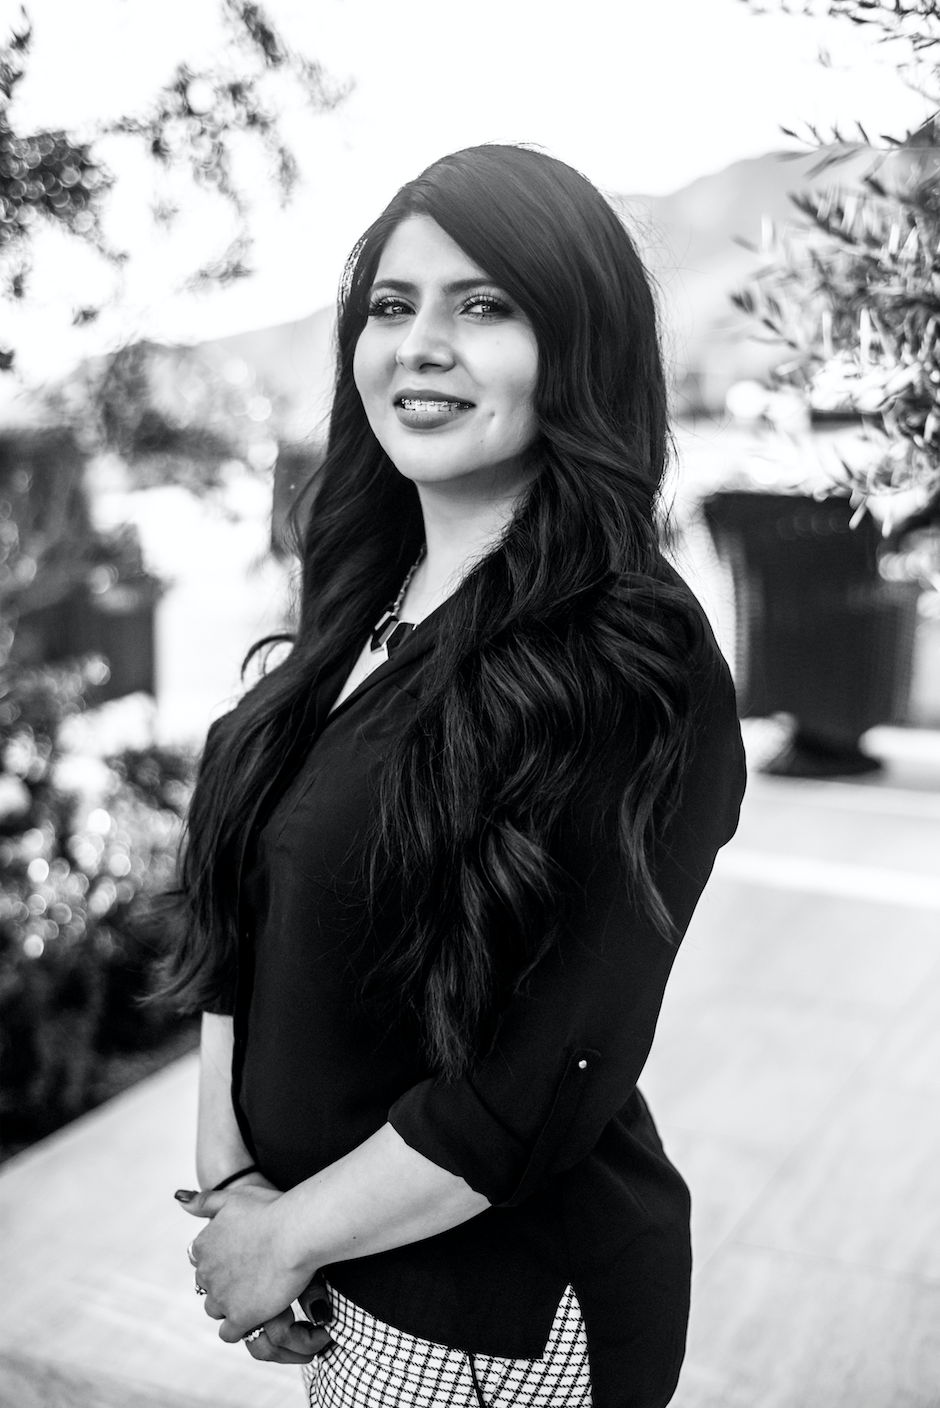 - ANGELINA PONCEOFFICE MANAGERAngelina is the Office Manager for Earth and Images. Since she joined the team in August of 2015, she is responsible for all office procedures. She uses her organizational skills to keep the team working efficiently. Angelina has 10 years of client services and office administrative experience. In her spare time, enjoys spending time with family and friends.